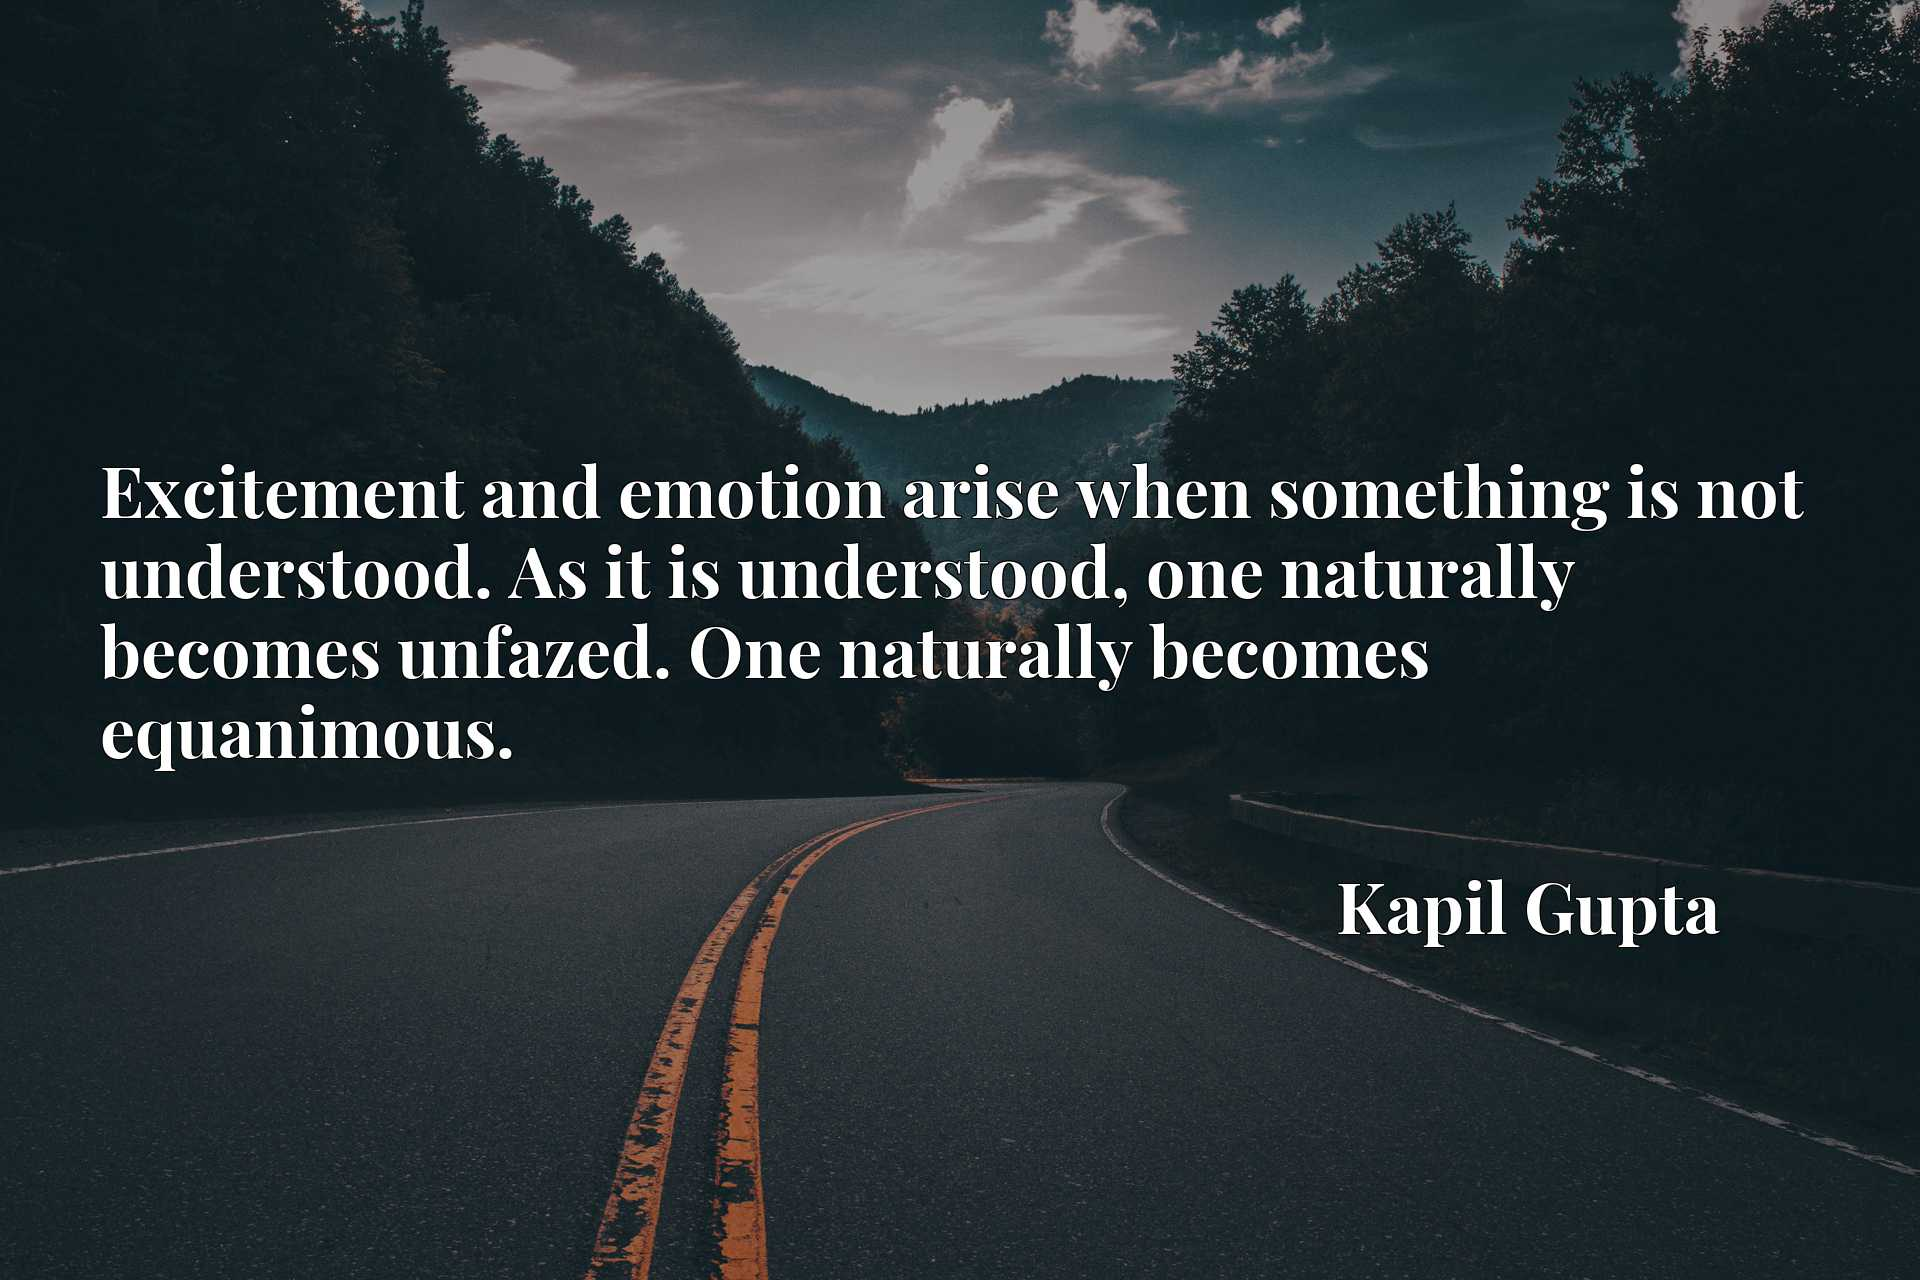 Excitement and emotion arise when something is not understood. As it is understood, one naturally becomes unfazed. One naturally becomes equanimous.